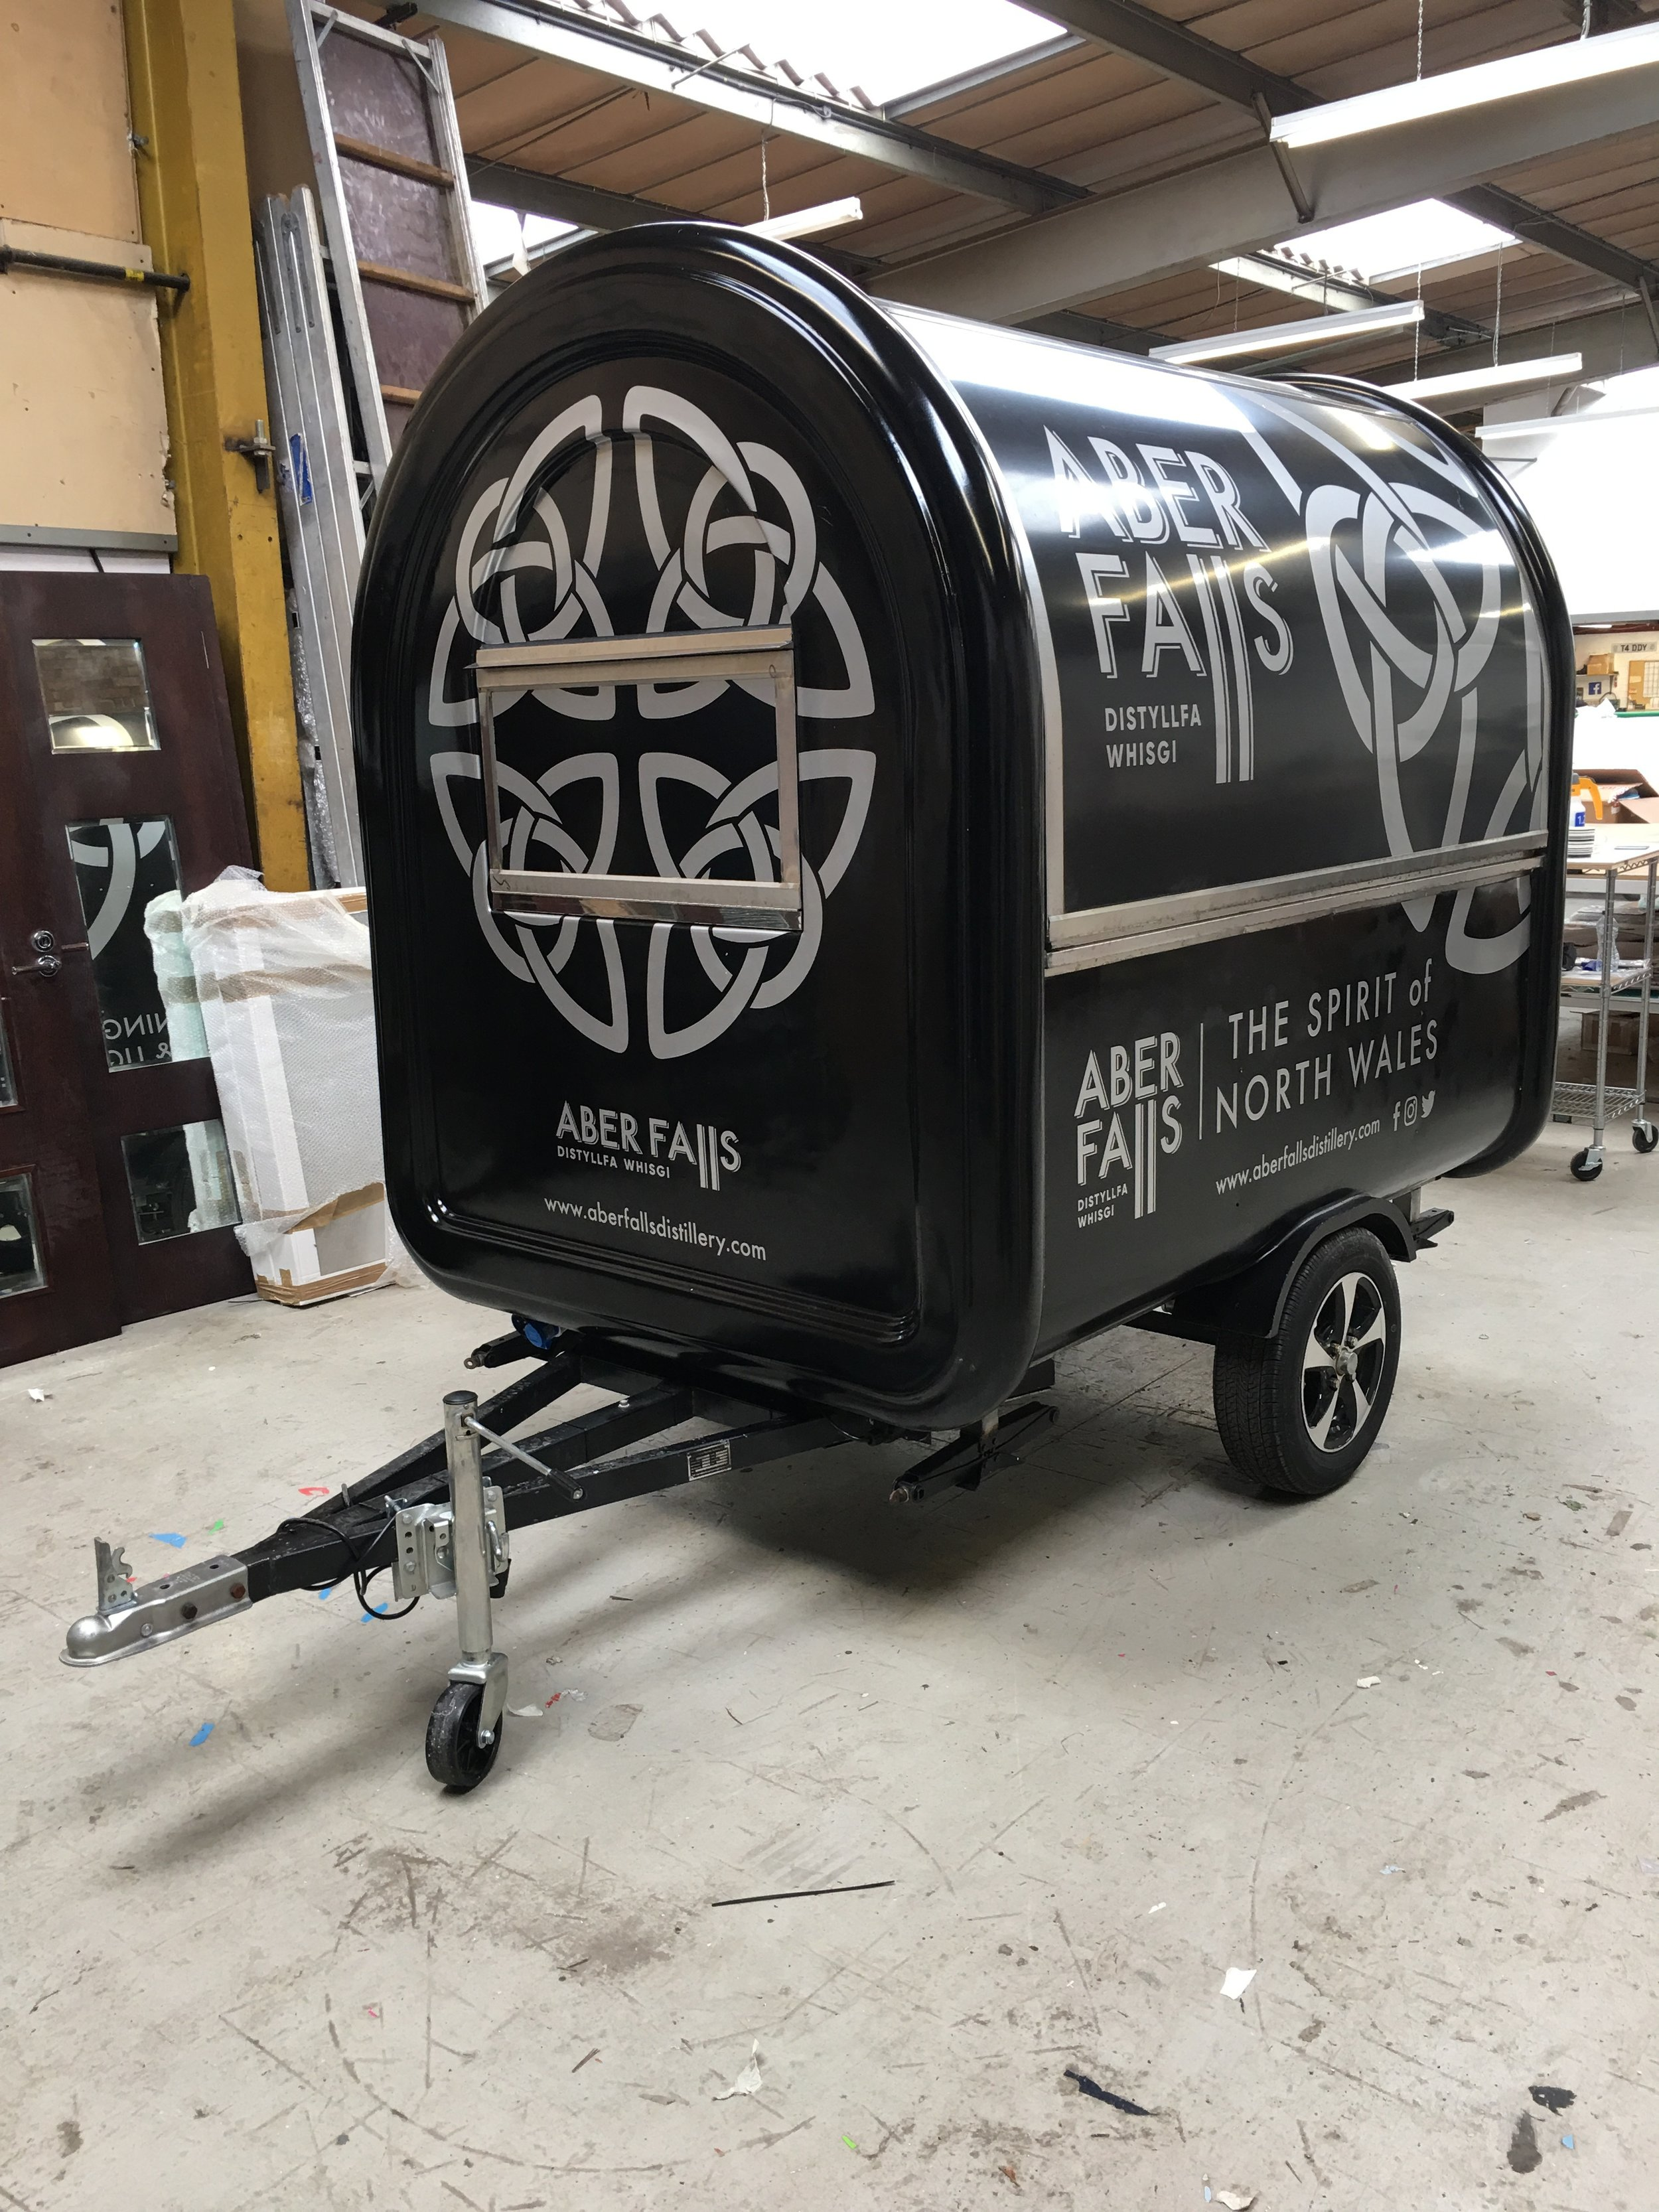 Gin Trailer Vinyl Graphics.   Vinyl graphics applied to all four sides of a mobile bar for a whiskey distillery based in Wales.